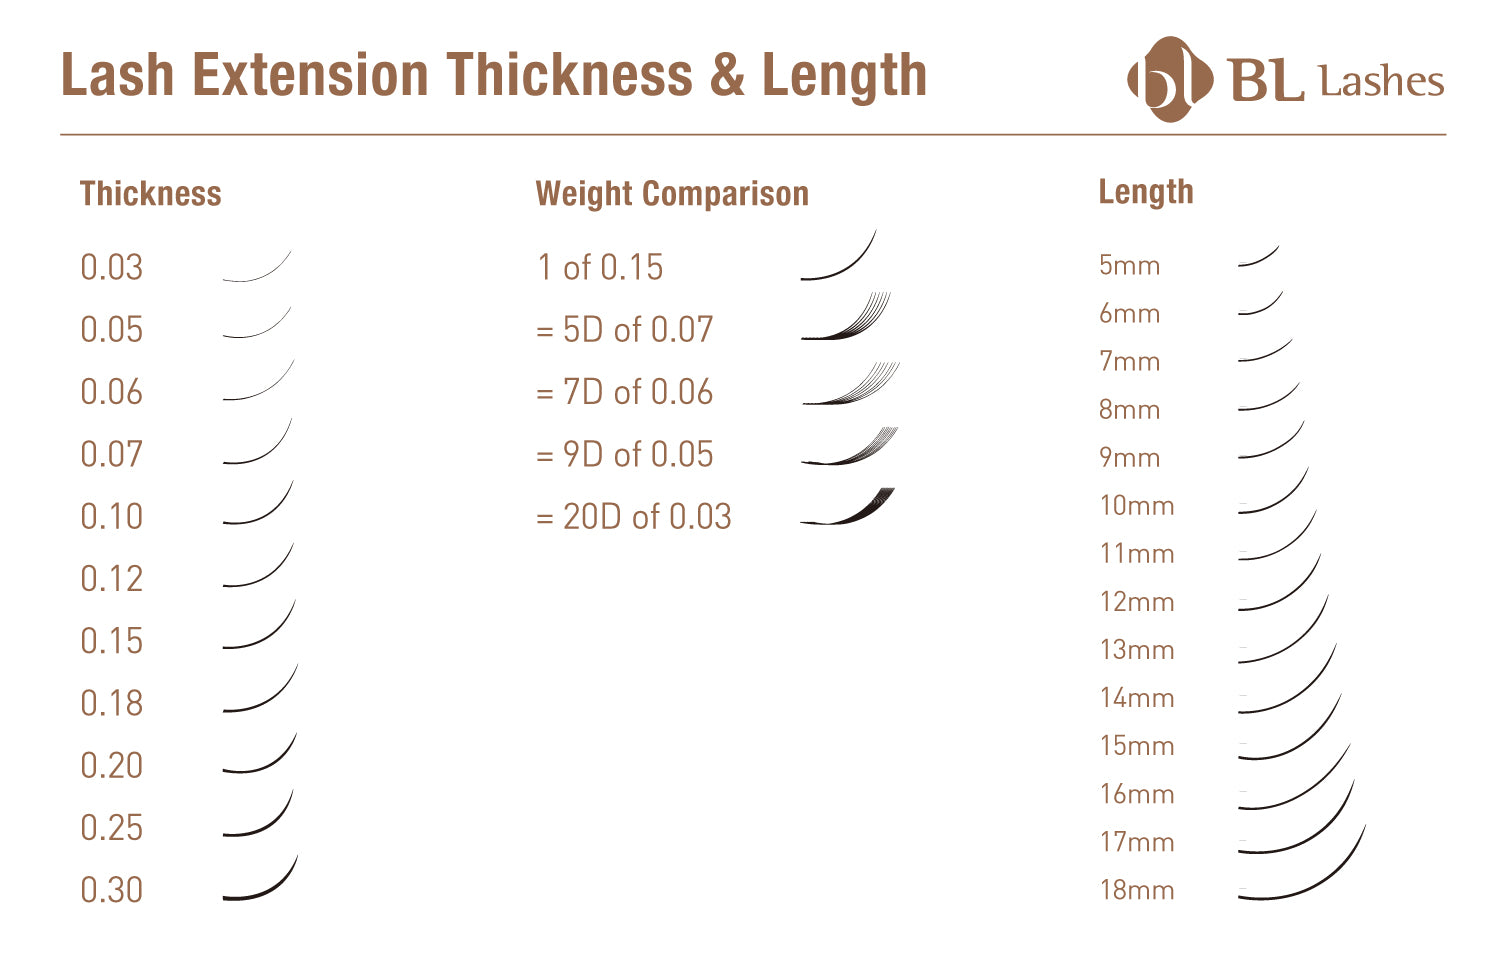 lash chart for extension lash weight, thickness and length